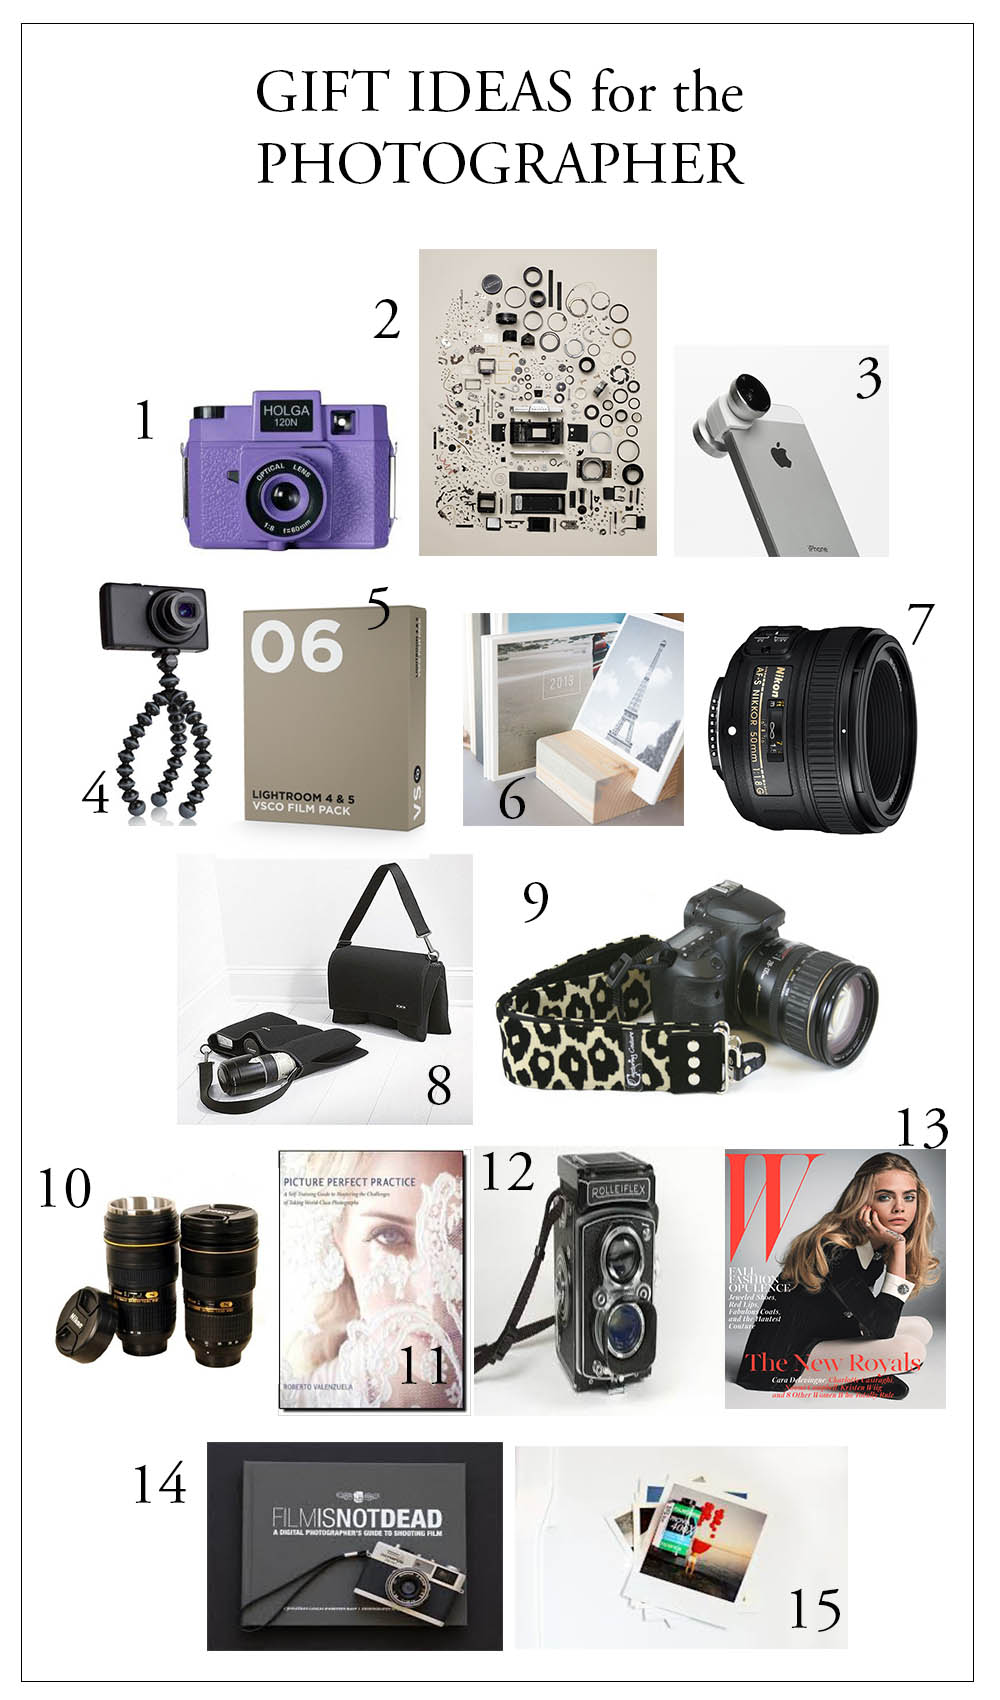 Gift ideas for photographers